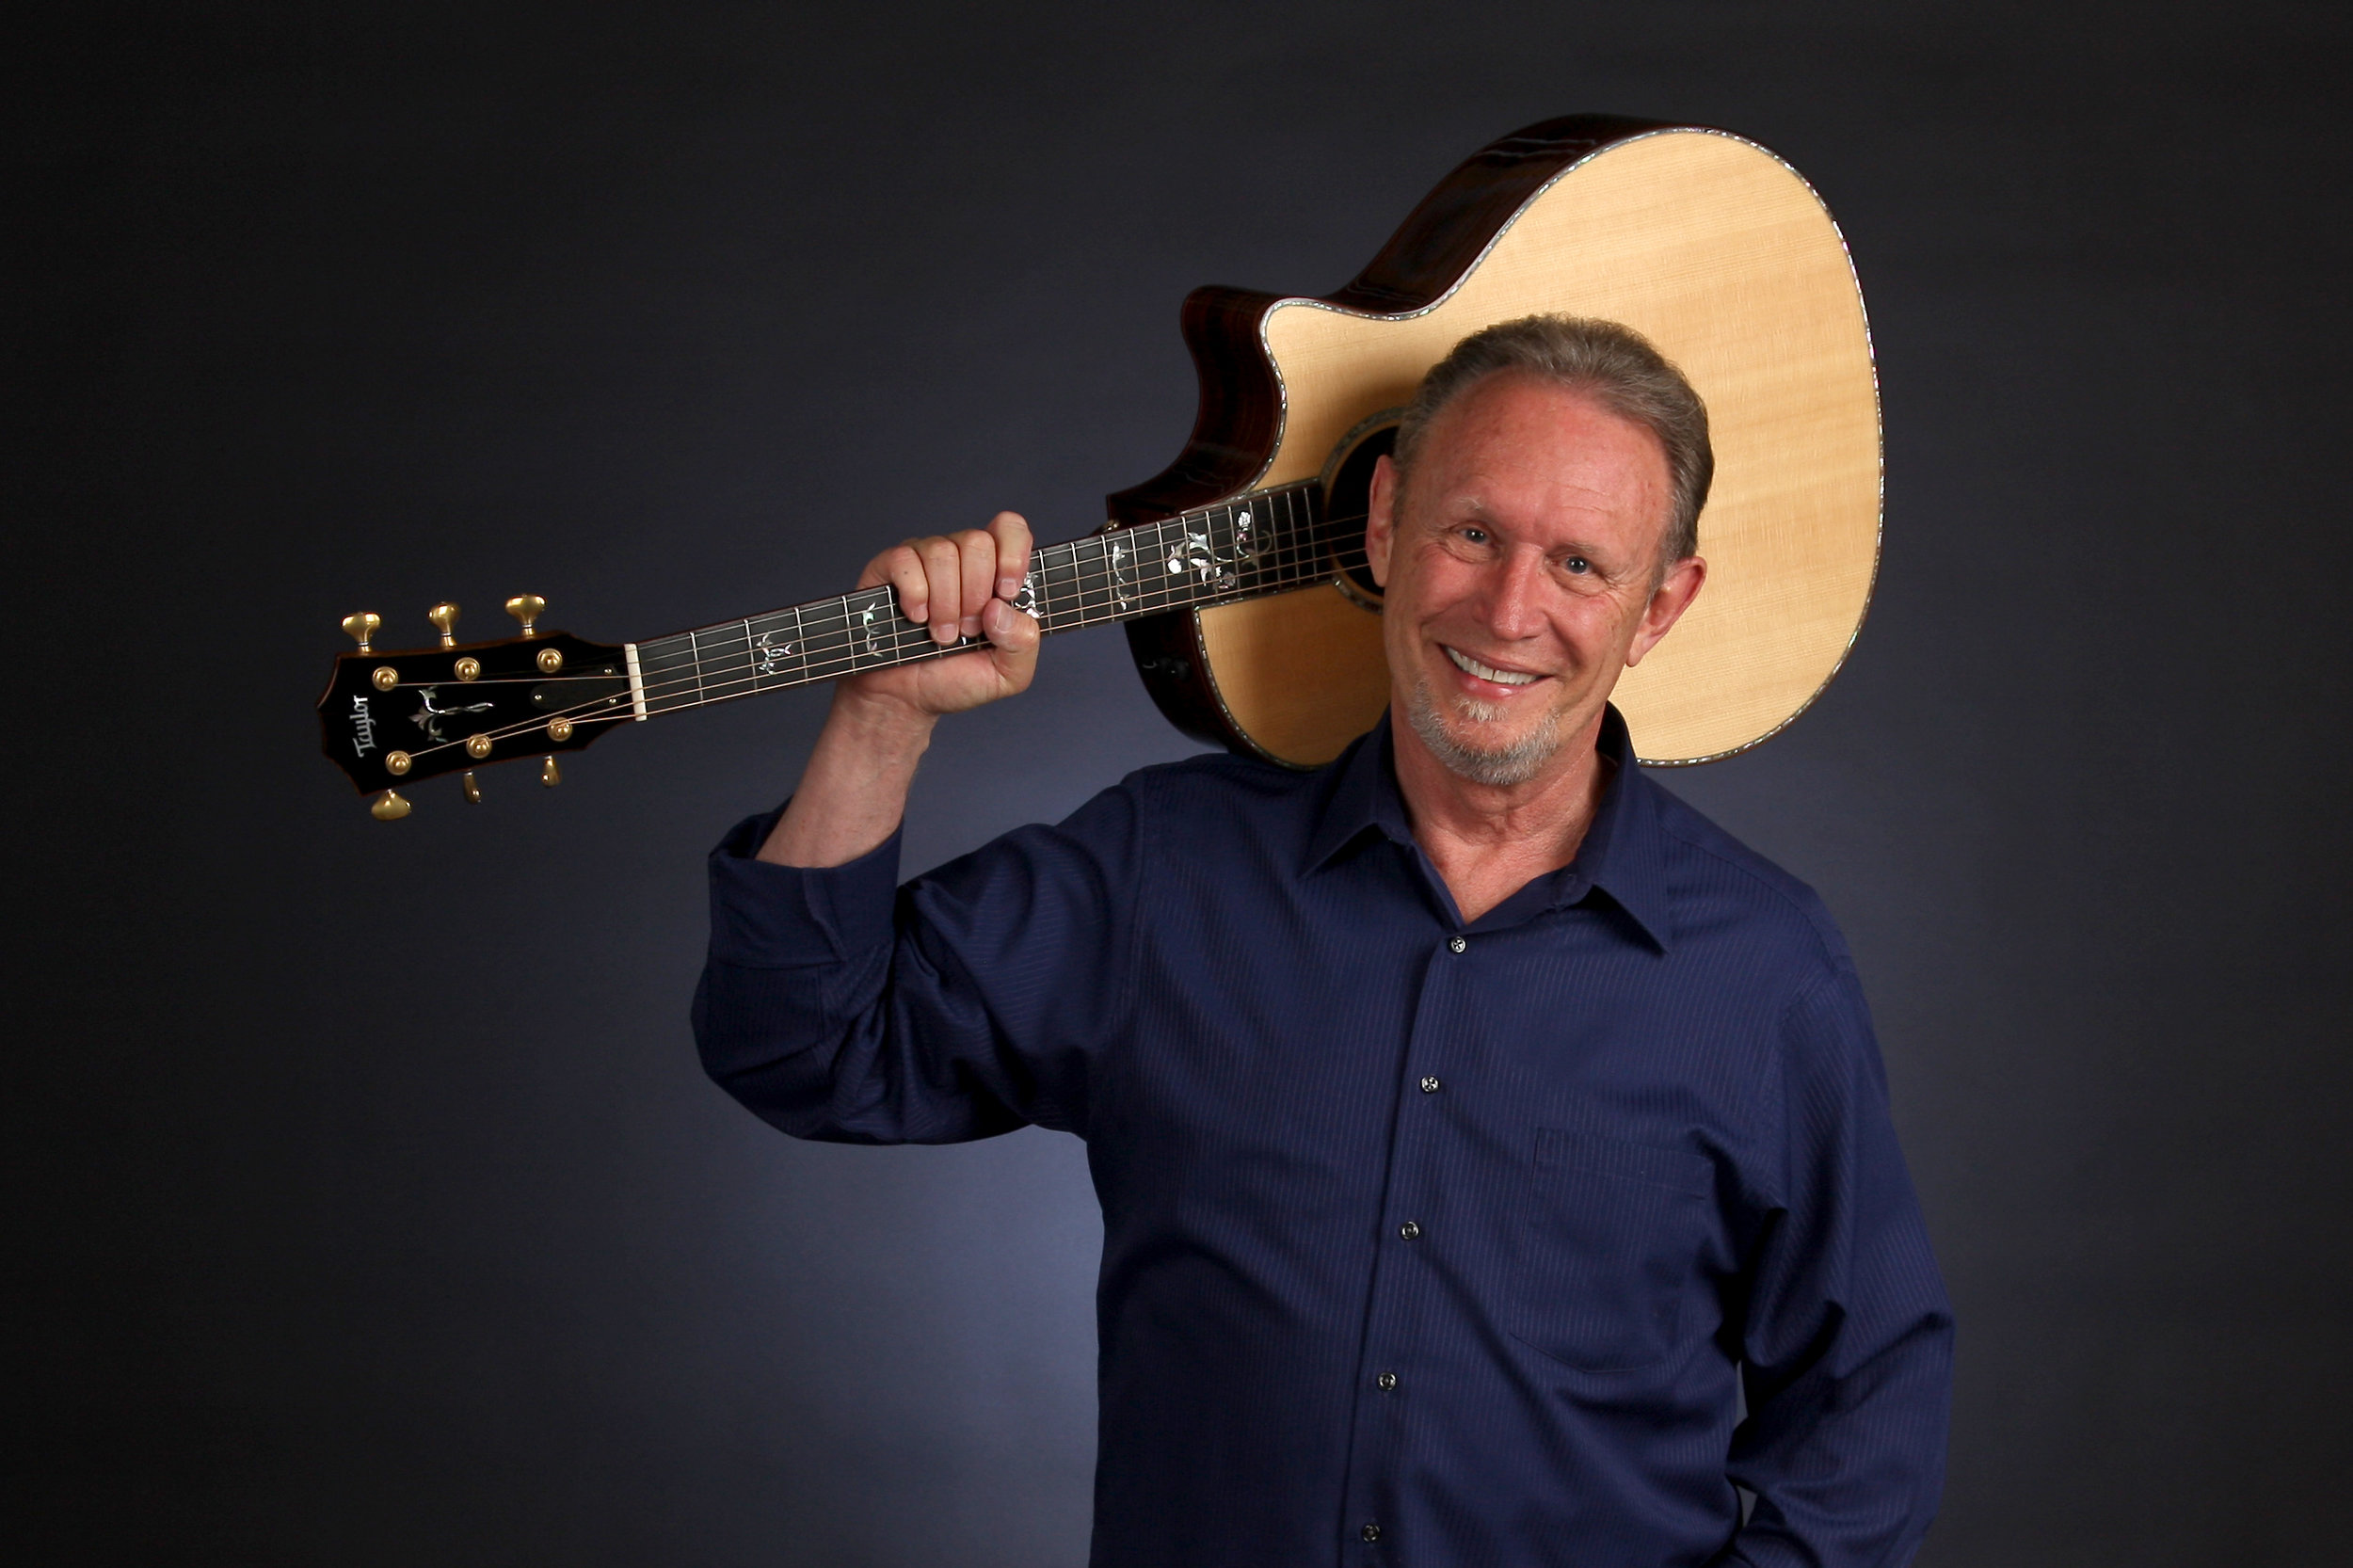 """Mark grew up in southern California where his major musical influences outside of church were Gordon Lightfoot, Bob Dylan, Peter, Paul and Mary, Paul Simon, the Beach Boys and pretty much any folk, folk rock or beach music. He relocated north of Boston, Massachusetts in the early 90's and considers himself and """"Noreasta""""."""